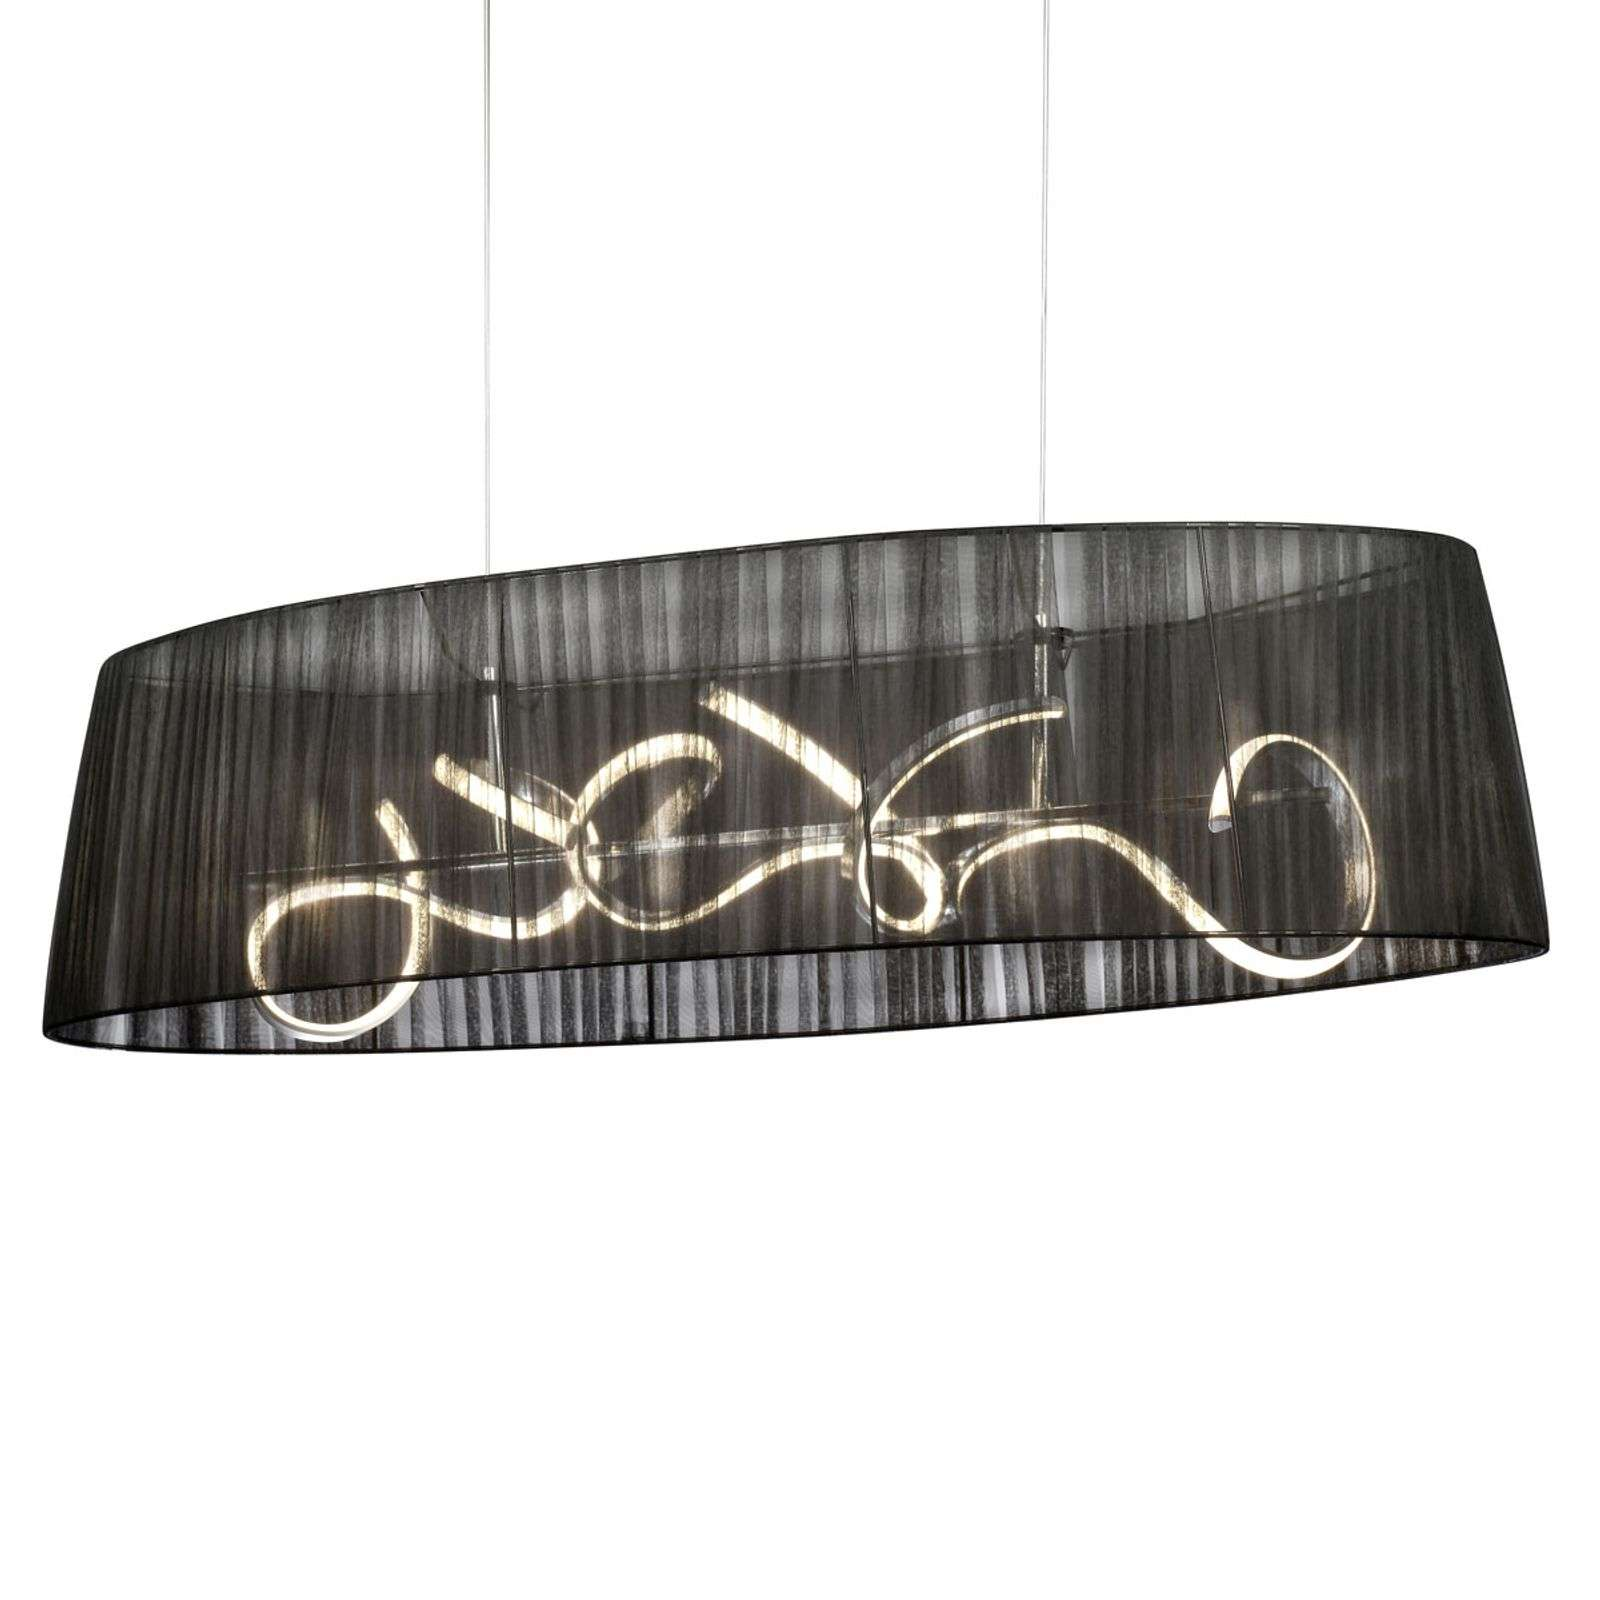 Suspension LED ovale Organza